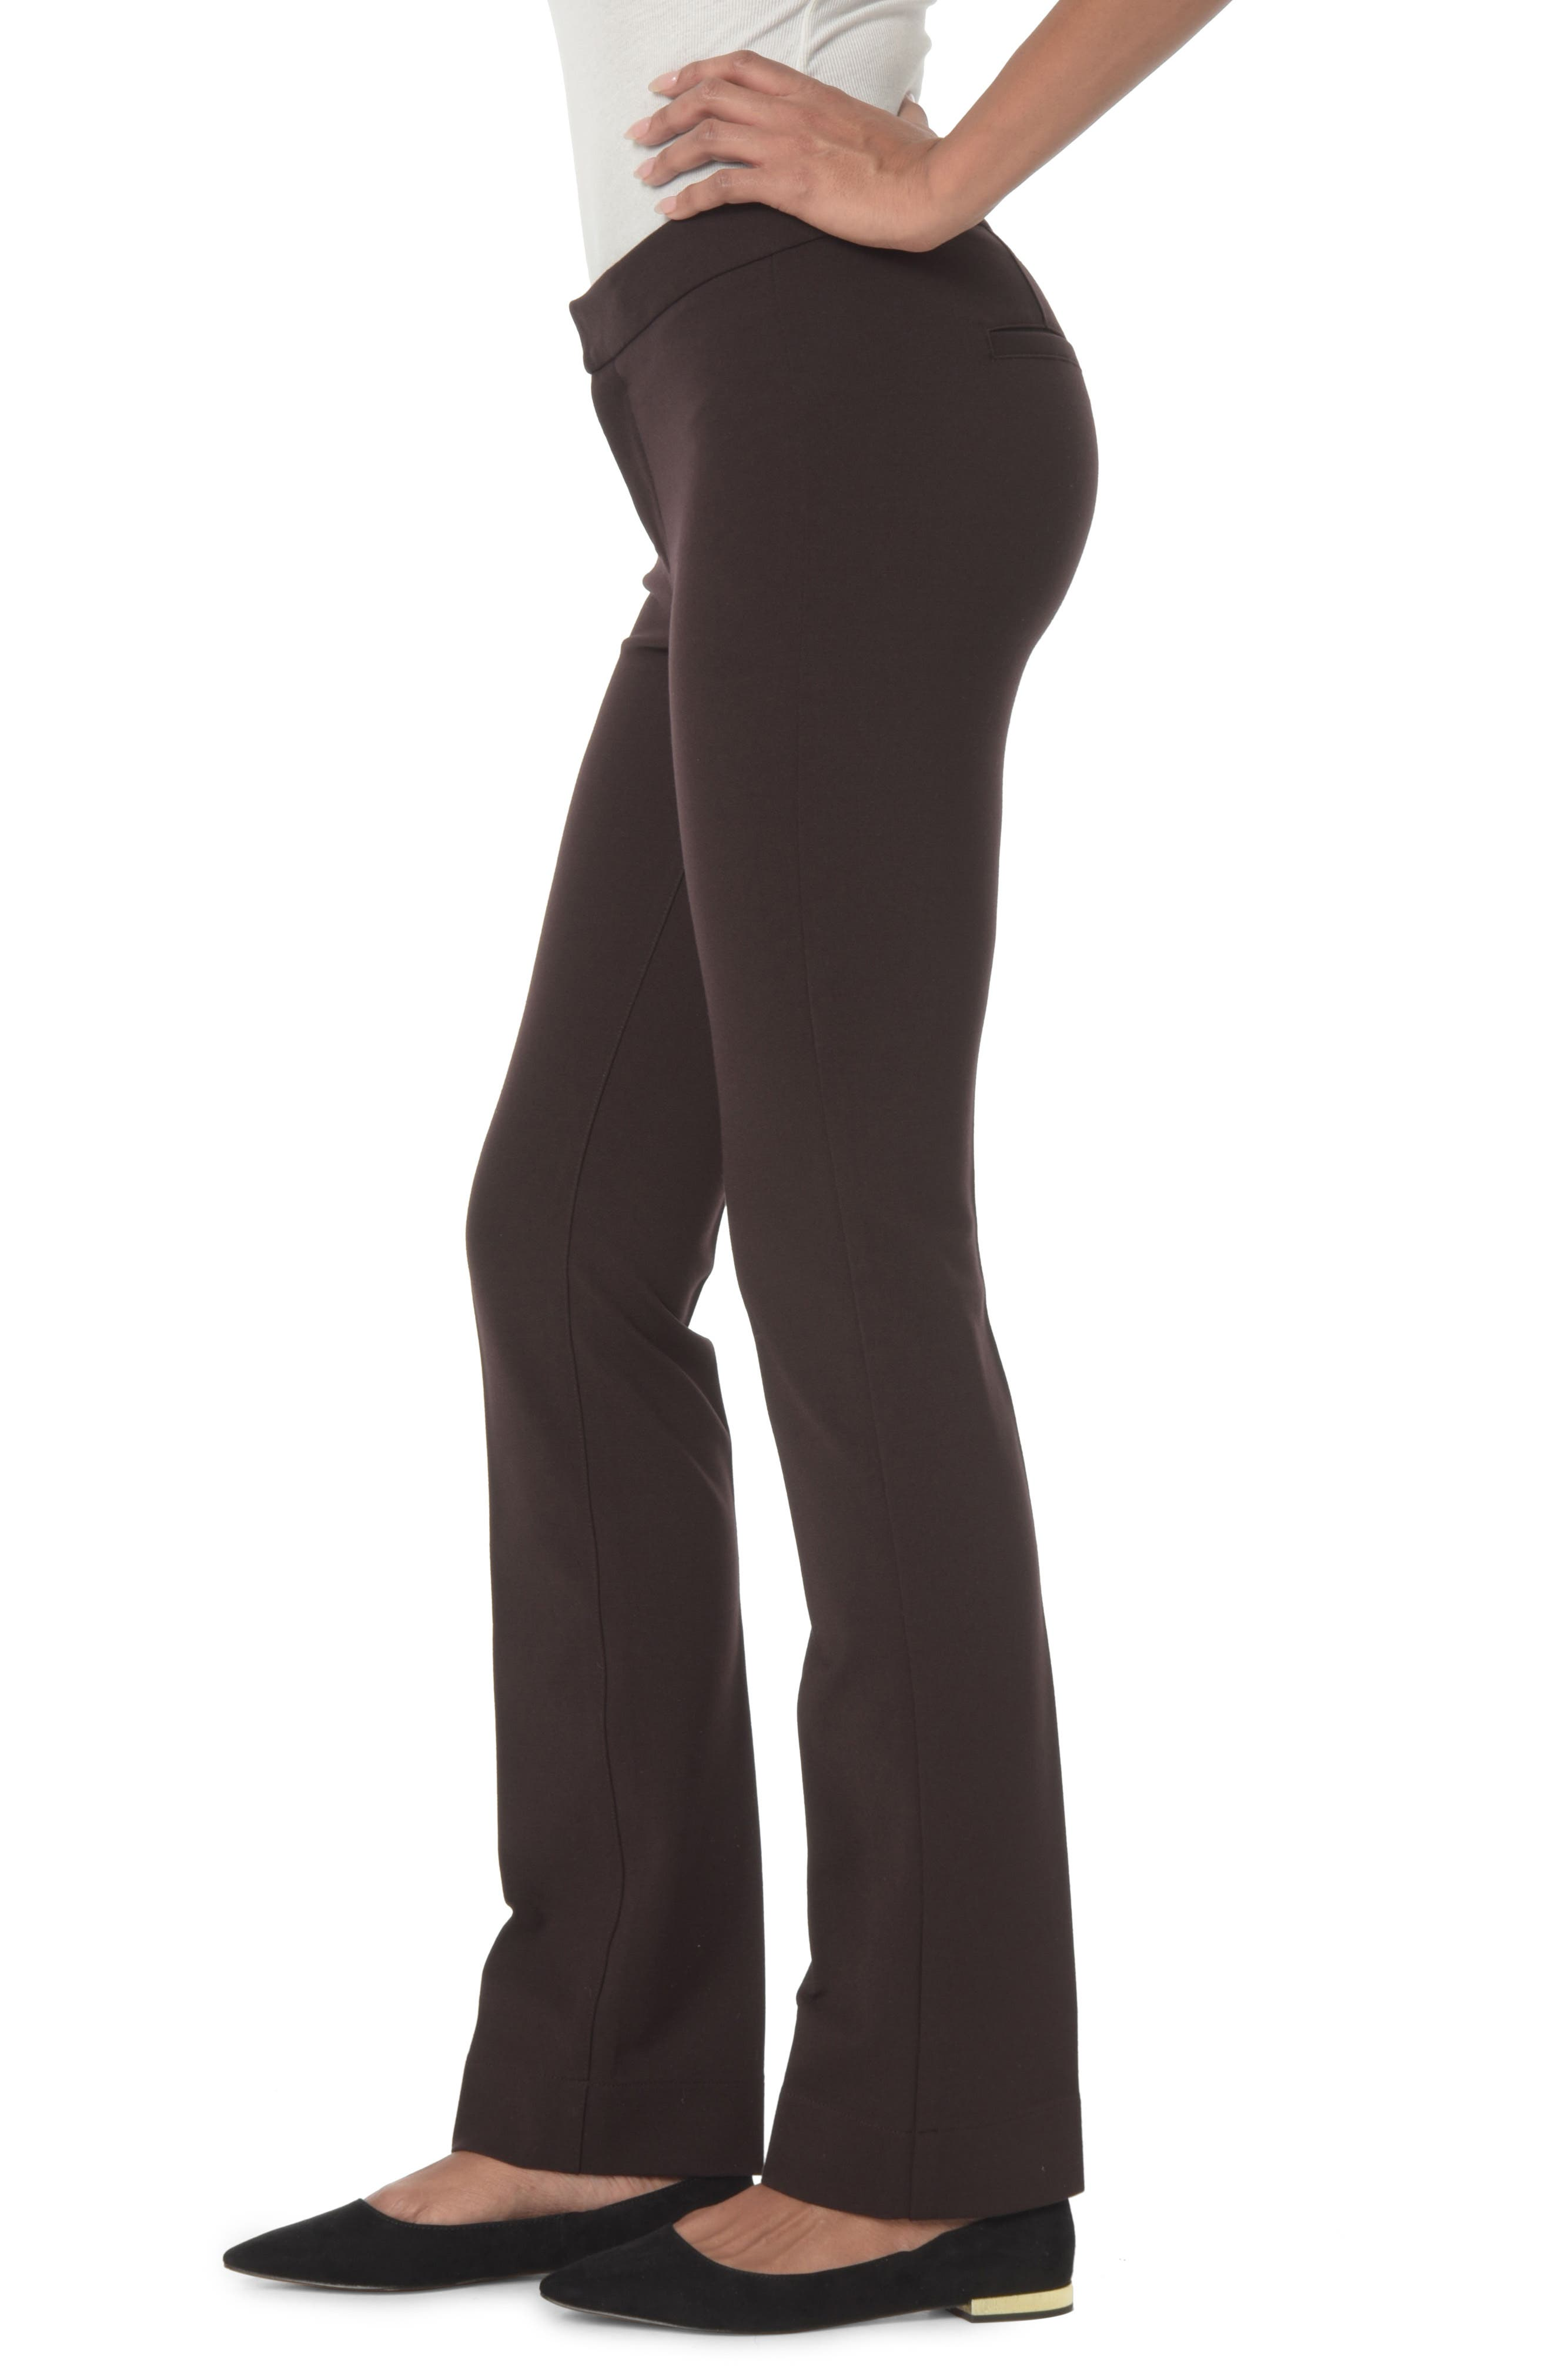 Stretch Knit Trousers,                             Alternate thumbnail 3, color,                             217